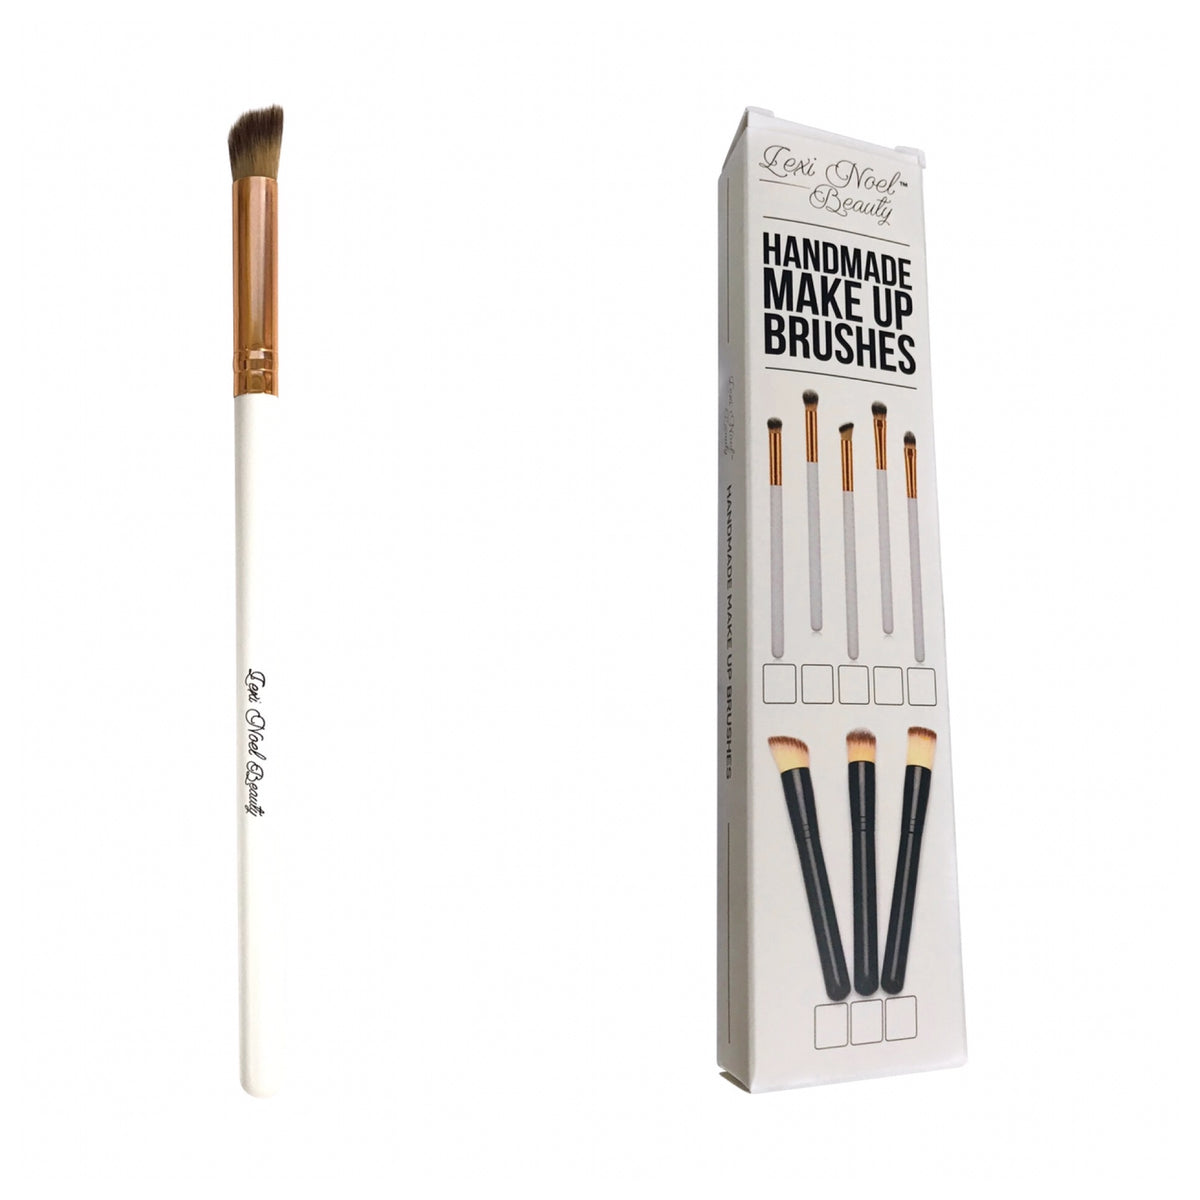 Lexi Noel Beauty Eye Contour Brush